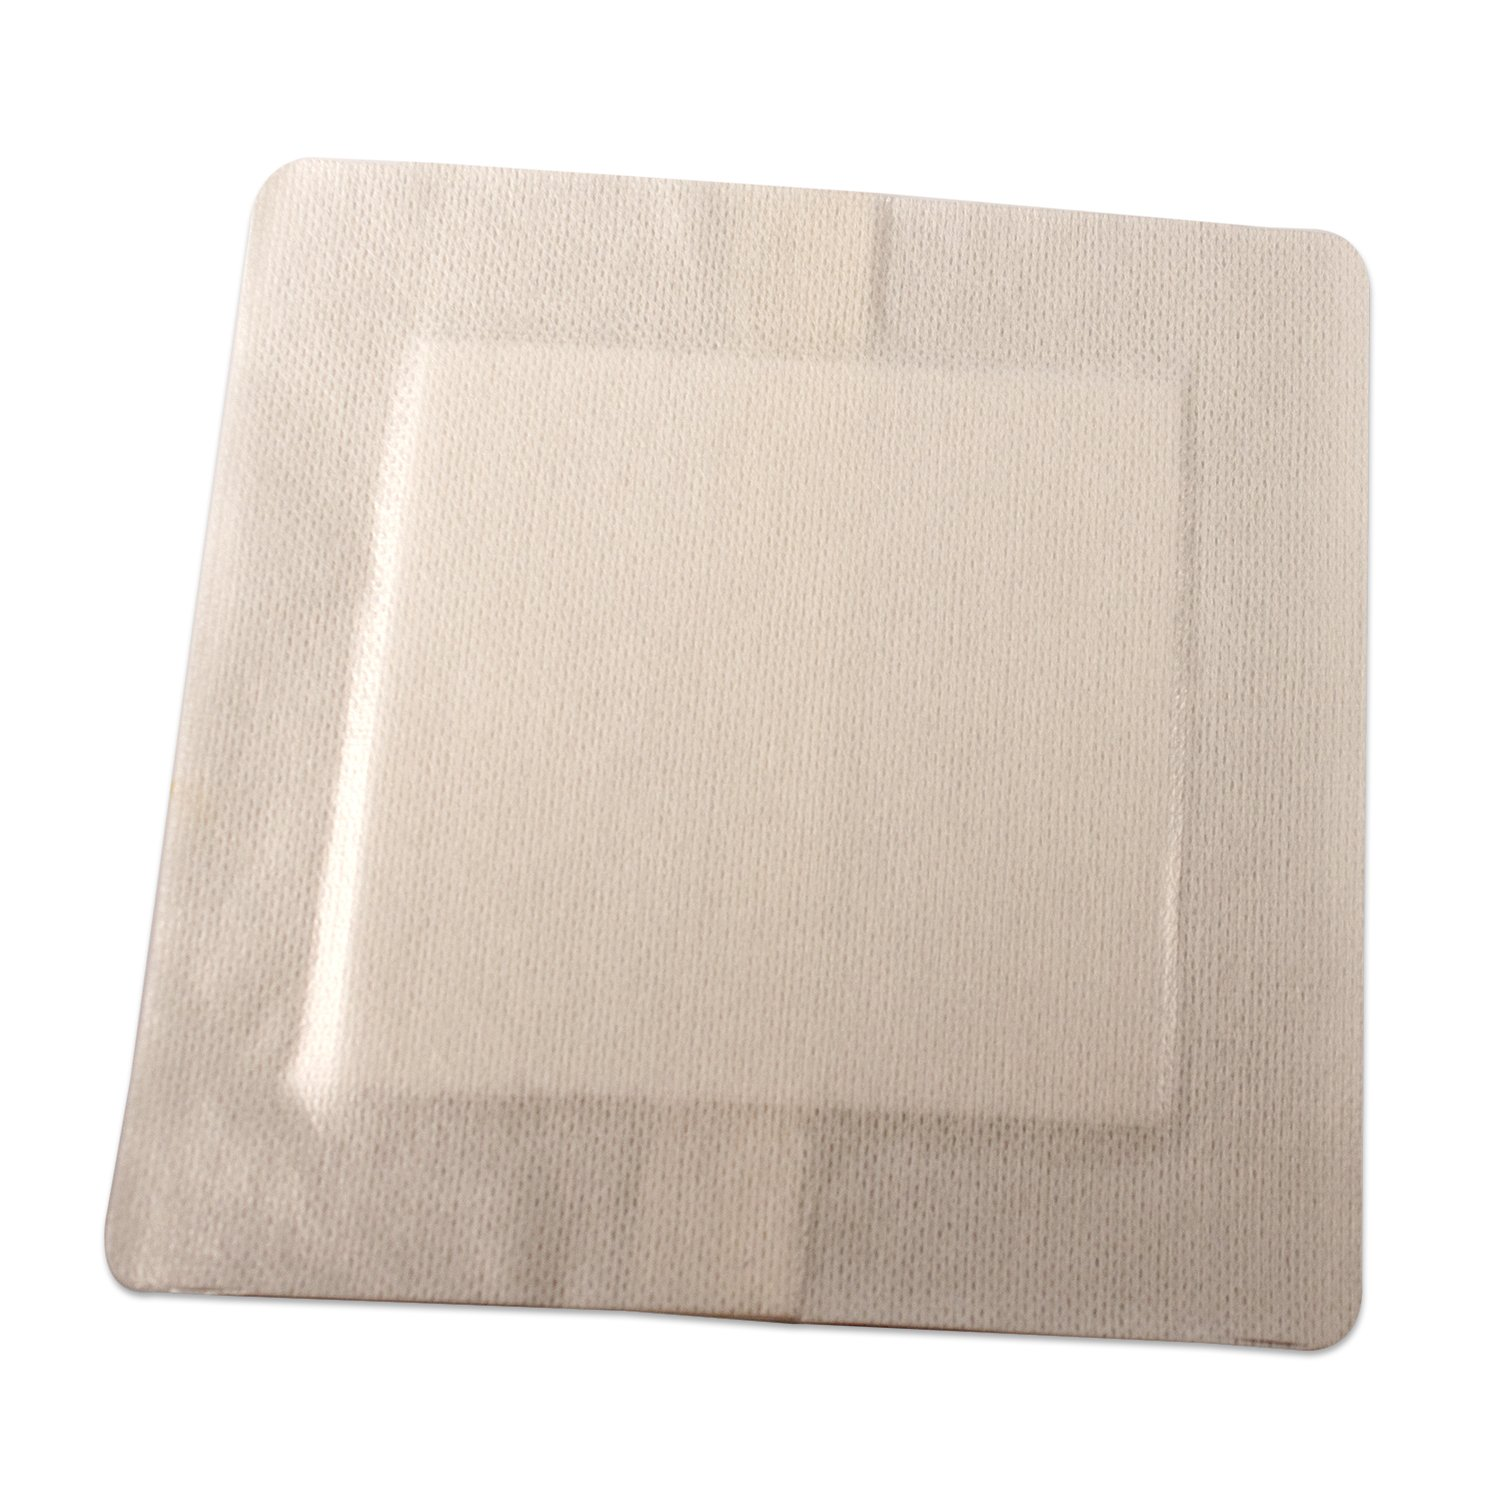 Dynarex DynaGuard - Waterproof Cover Composite Wound Dressings - Sterile - Large 6''x6'' - 10 Count